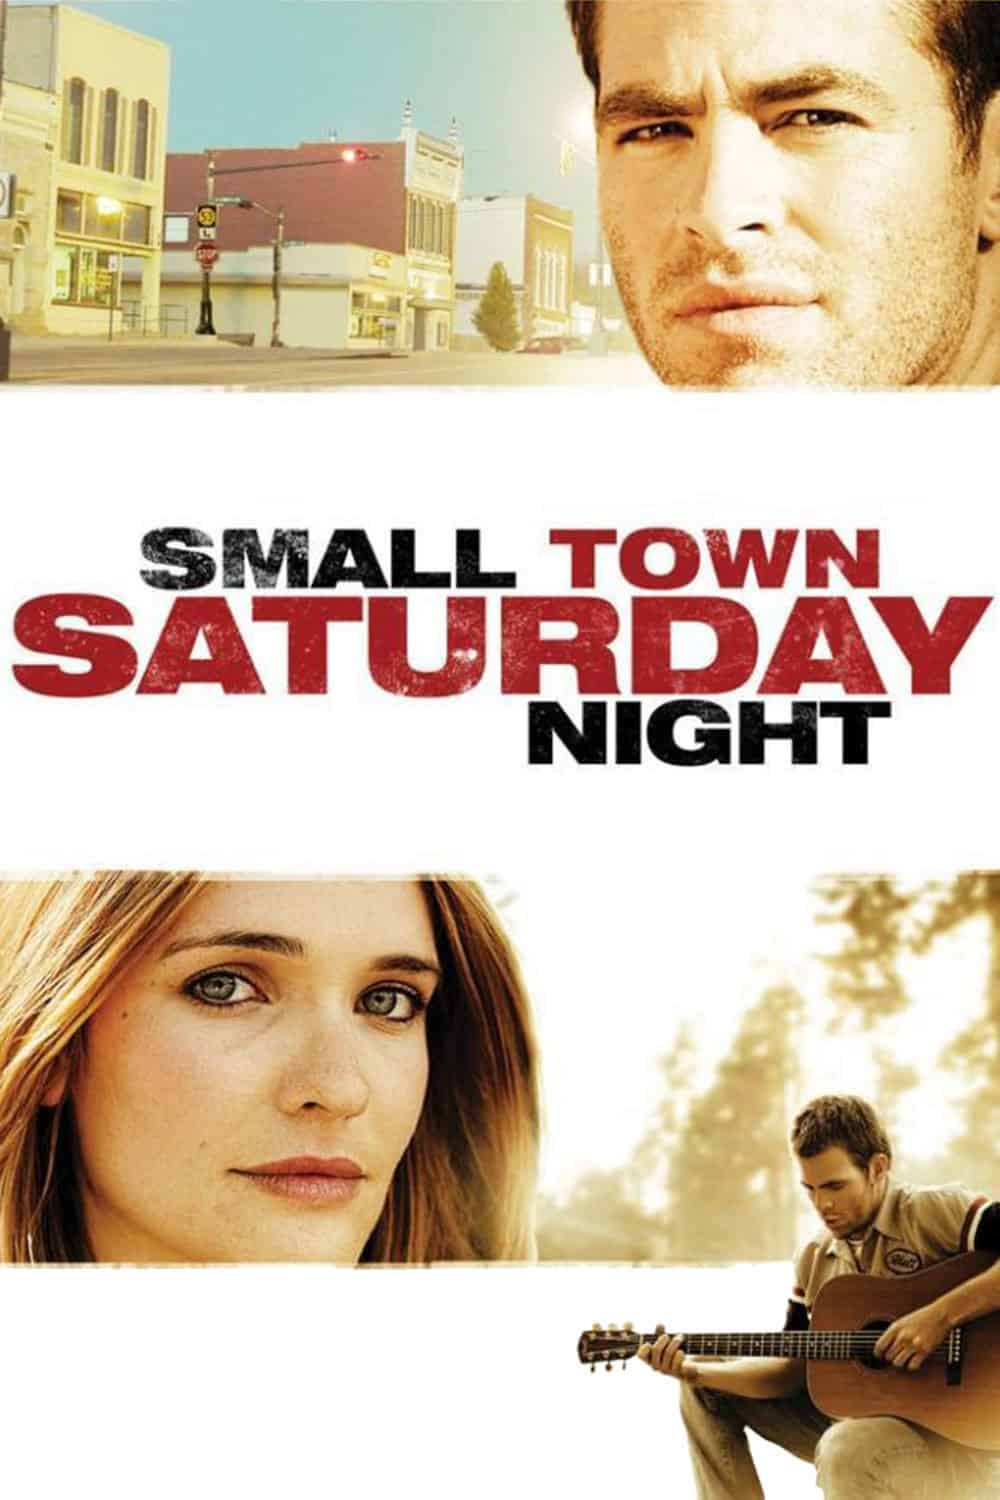 Small Town Saturday Night, 2009